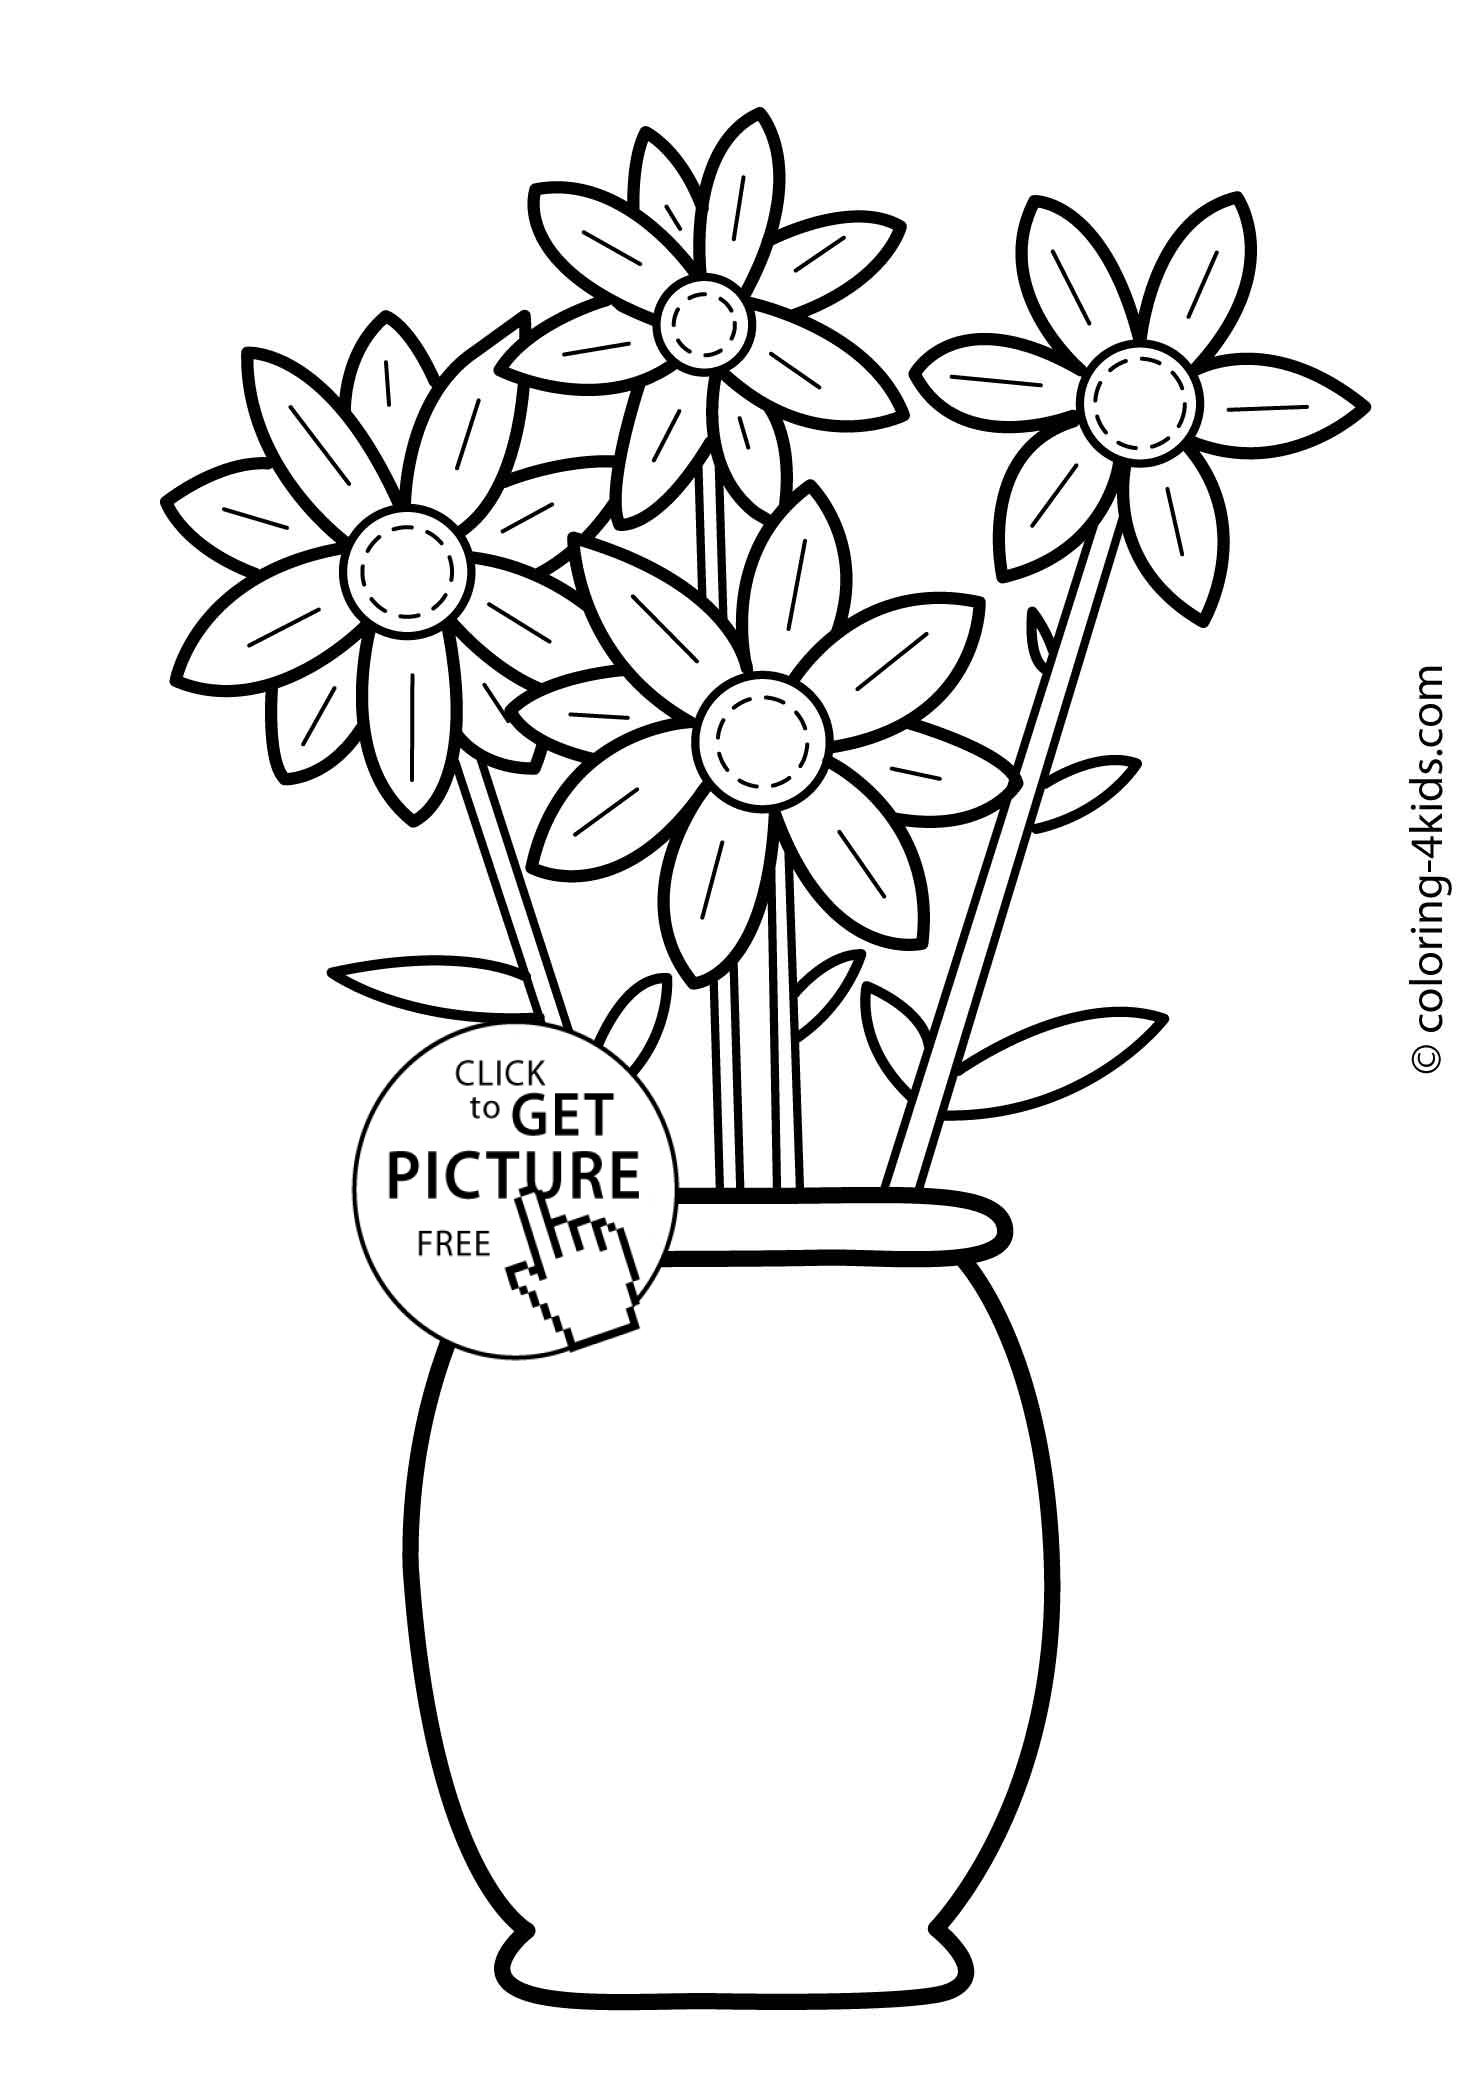 Flowers coloring pages for kids, printable, 6 | coloing ...